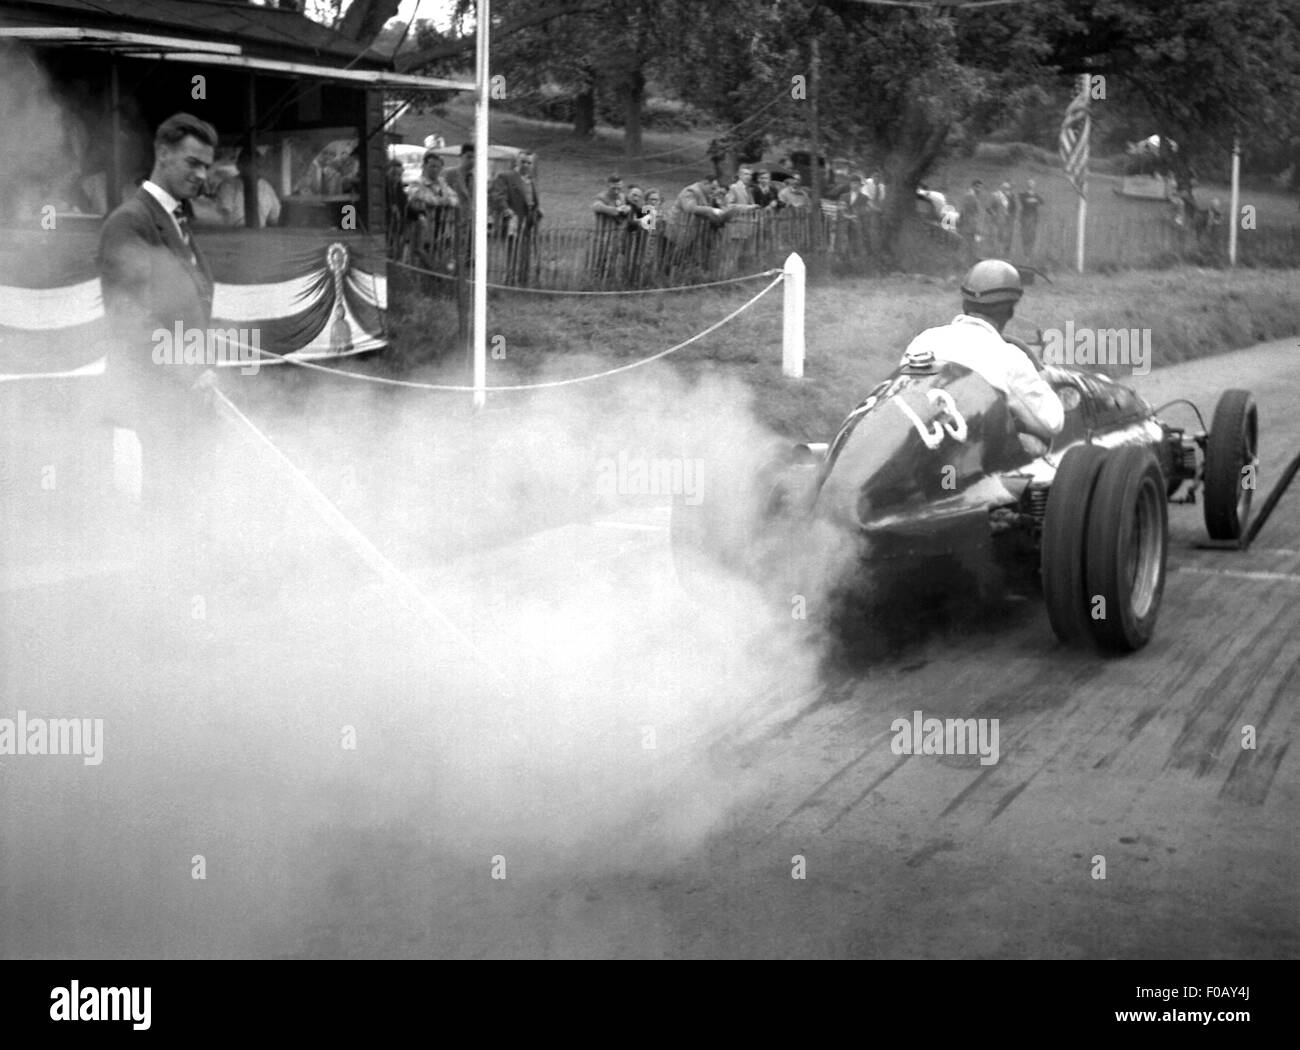 Bugatti racing car at Prescott hillclimb, UK 1930s - Stock Image